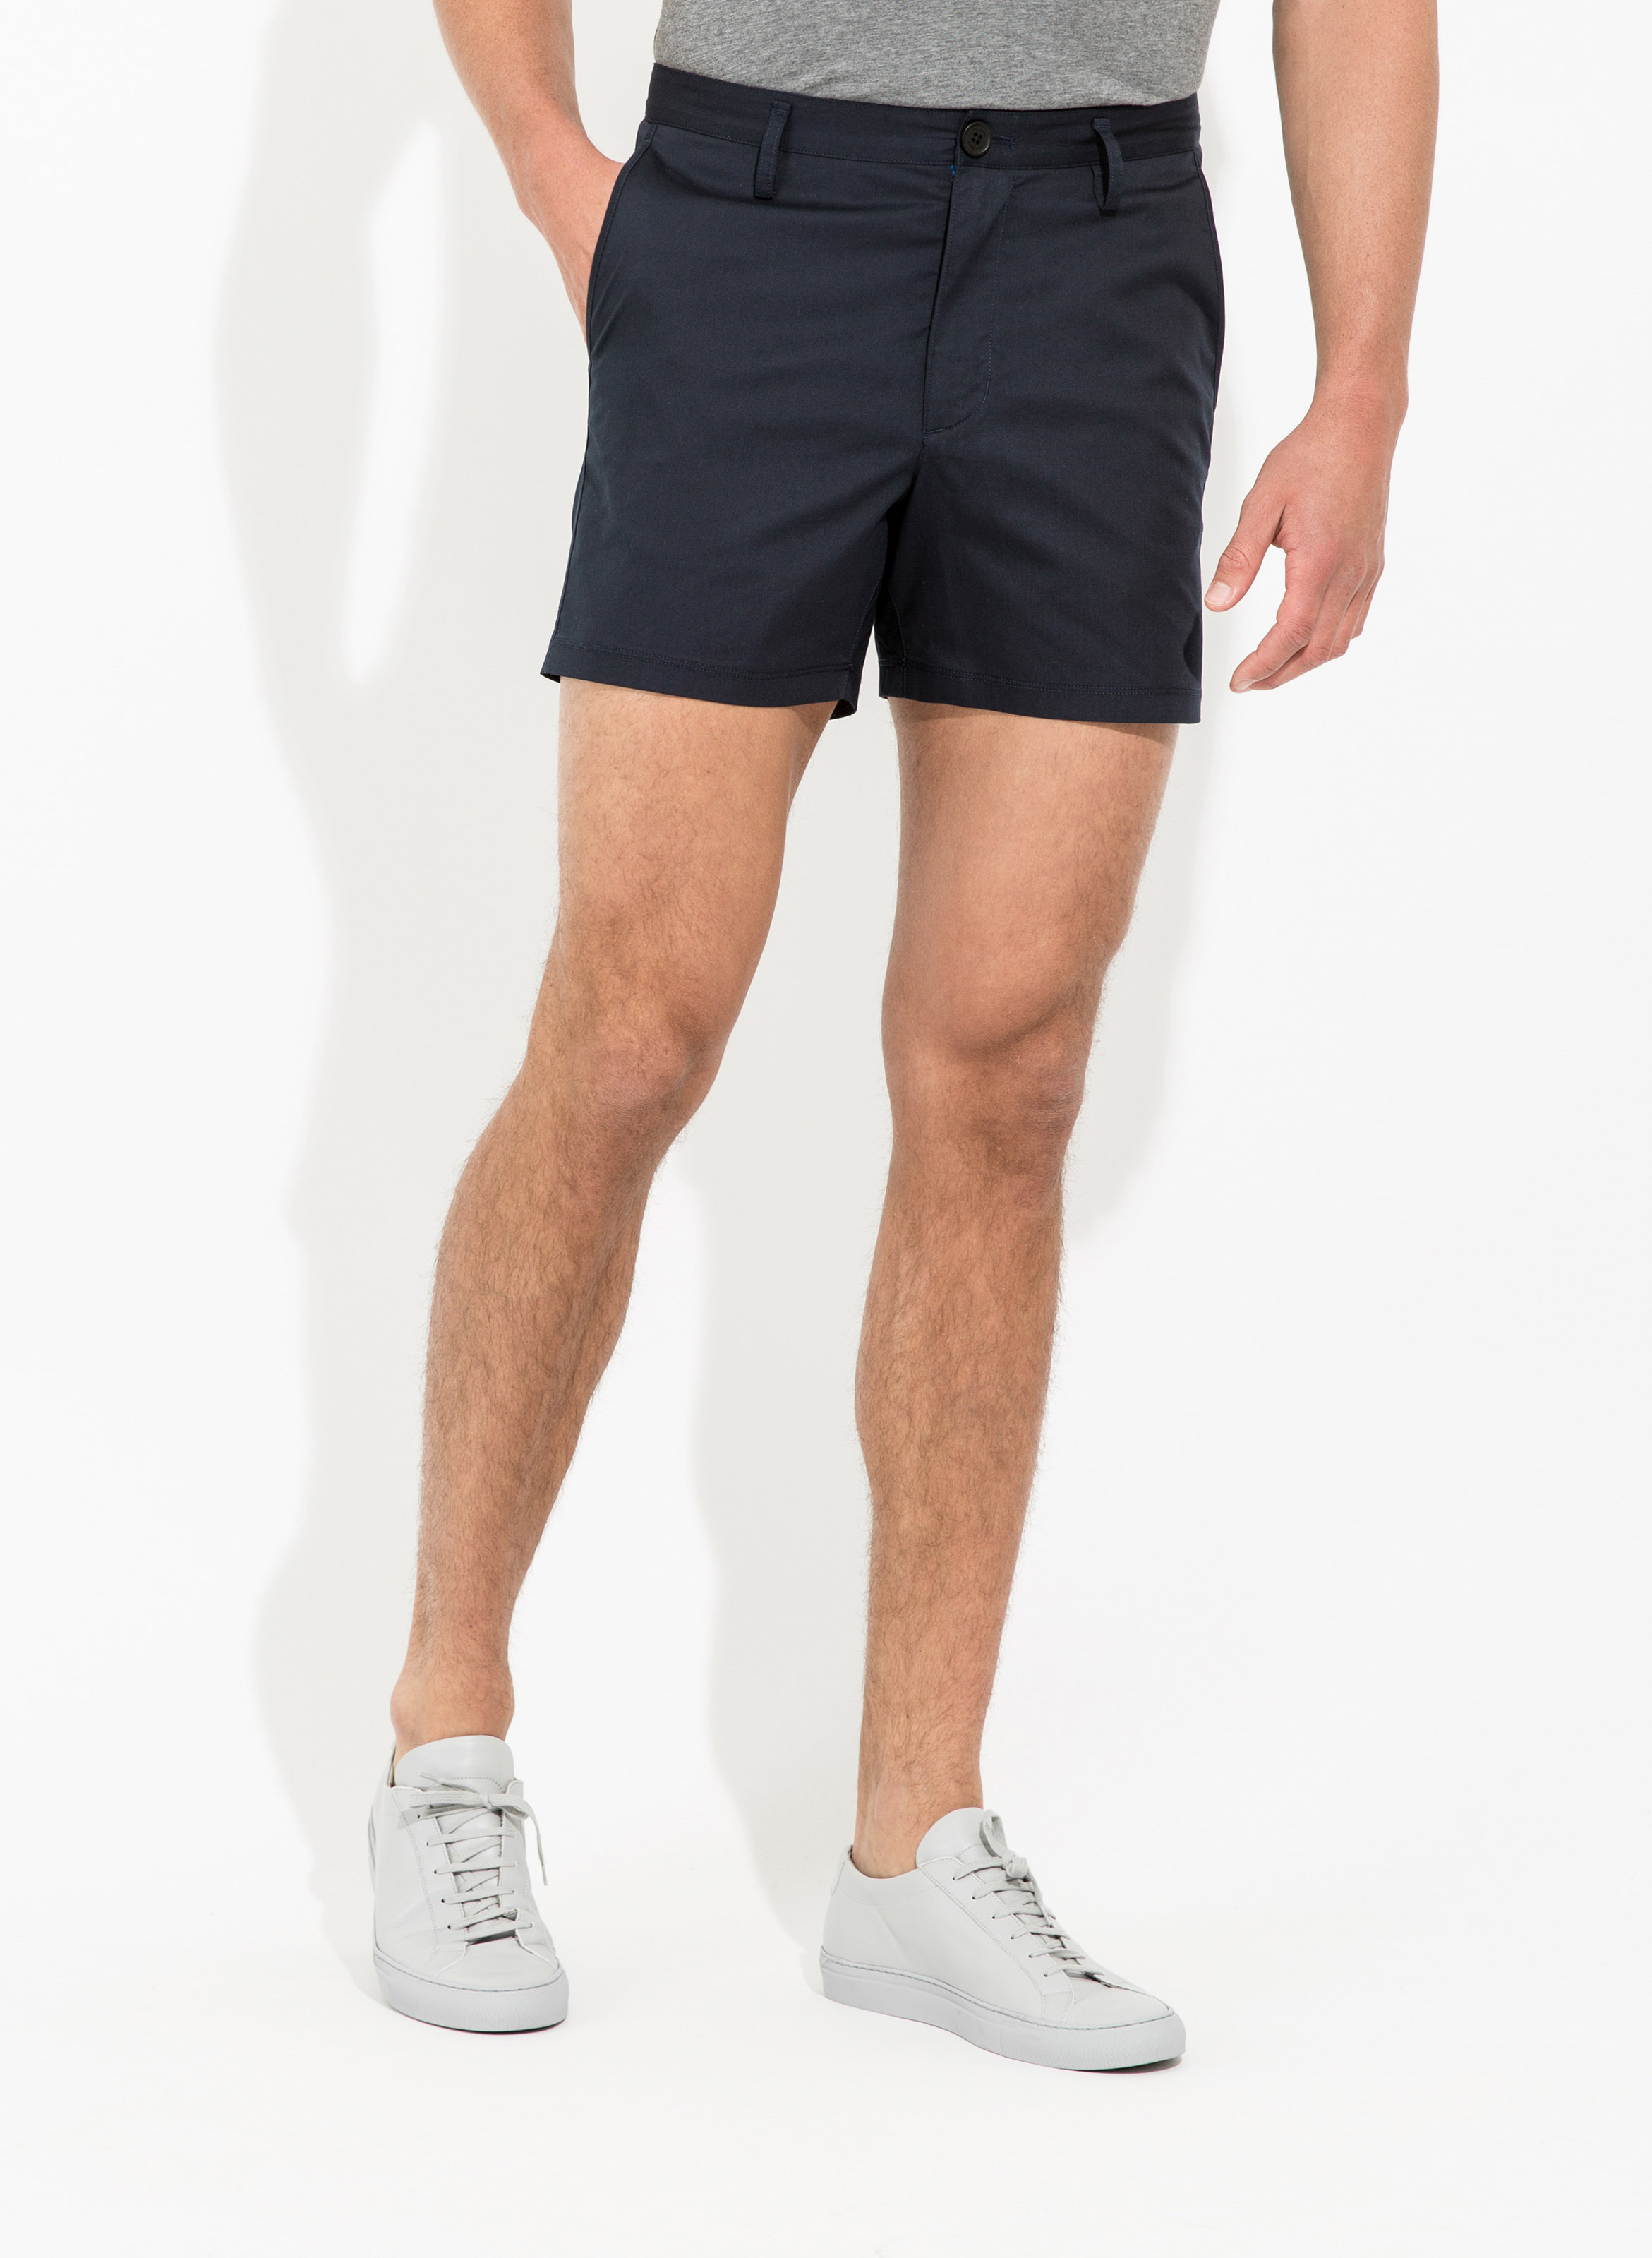 Men's Taclite Inch Inseam Shorts, Battle Brown, Waist. Best prices on Mens 5 inseam shorts in Men's Shorts online. Visit Bizrate to find the best deals on top brands. Read reviews on Clothing & Accessories merchants and buy with confidence. About Connexity;.